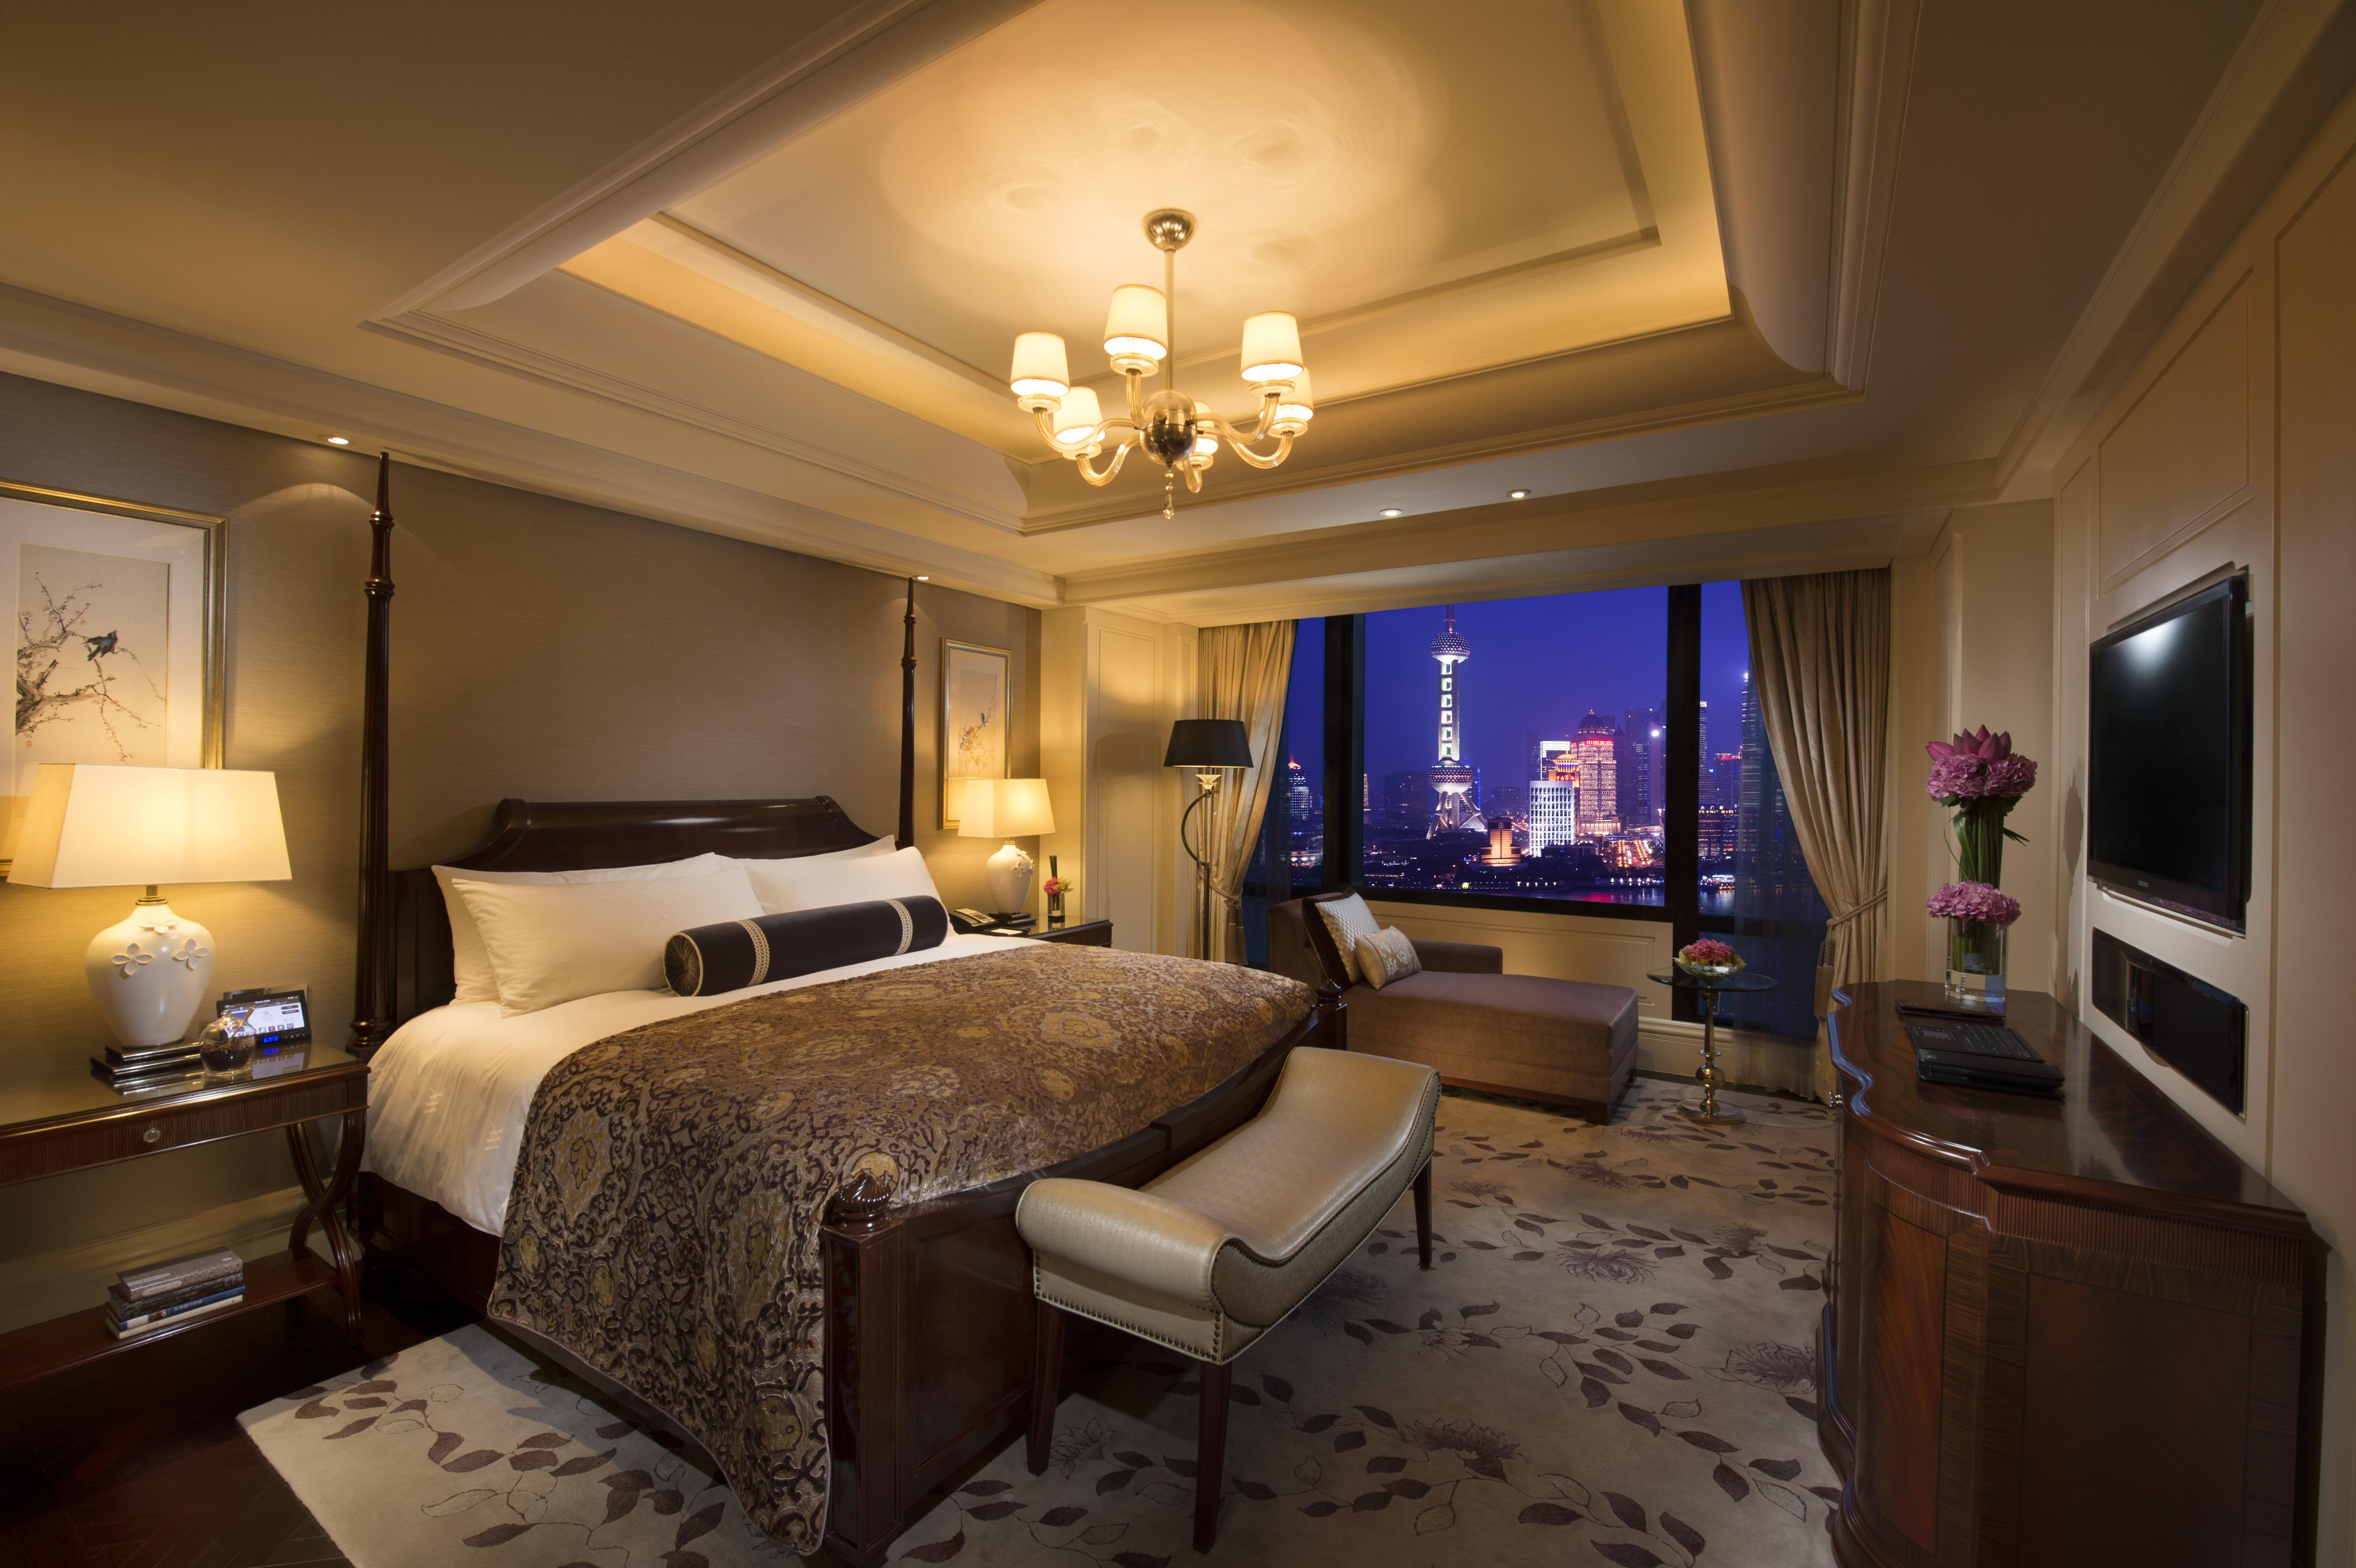 the bedroom of The Presidential Suite at Waldorf Astoria in Shanghai